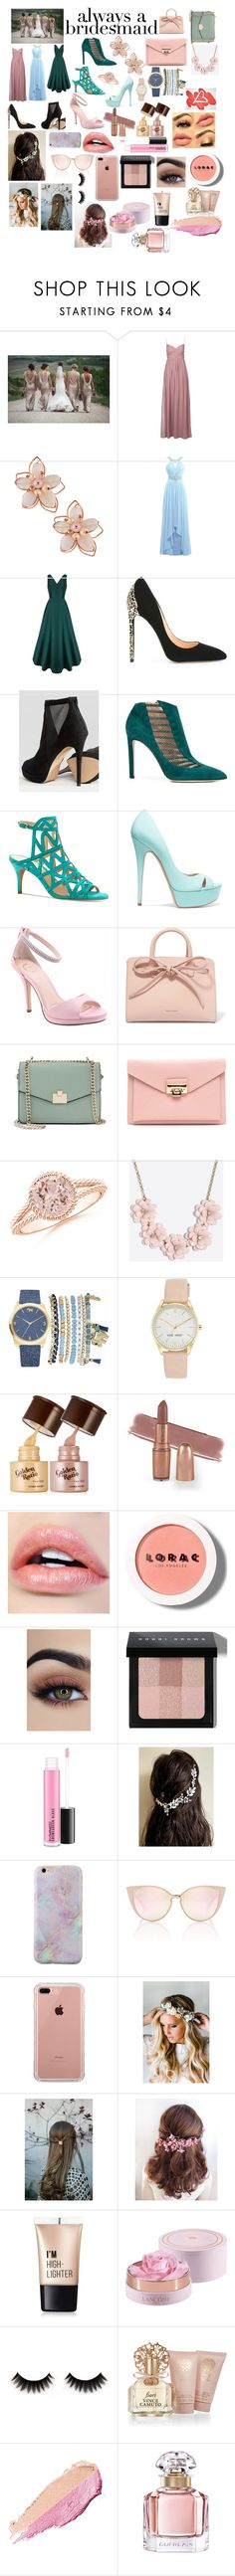 """""""Always A Bridesmaid❤️"""" by fashionista0333 ❤ liked on Polyvore featuring NAKAMOL, Cerasella Milano, ALDO, Chloe Gosselin, Vince Camuto, Casadei, I. MILLER, Mansur Gavriel, Jennifer Lopez and J.Crew"""